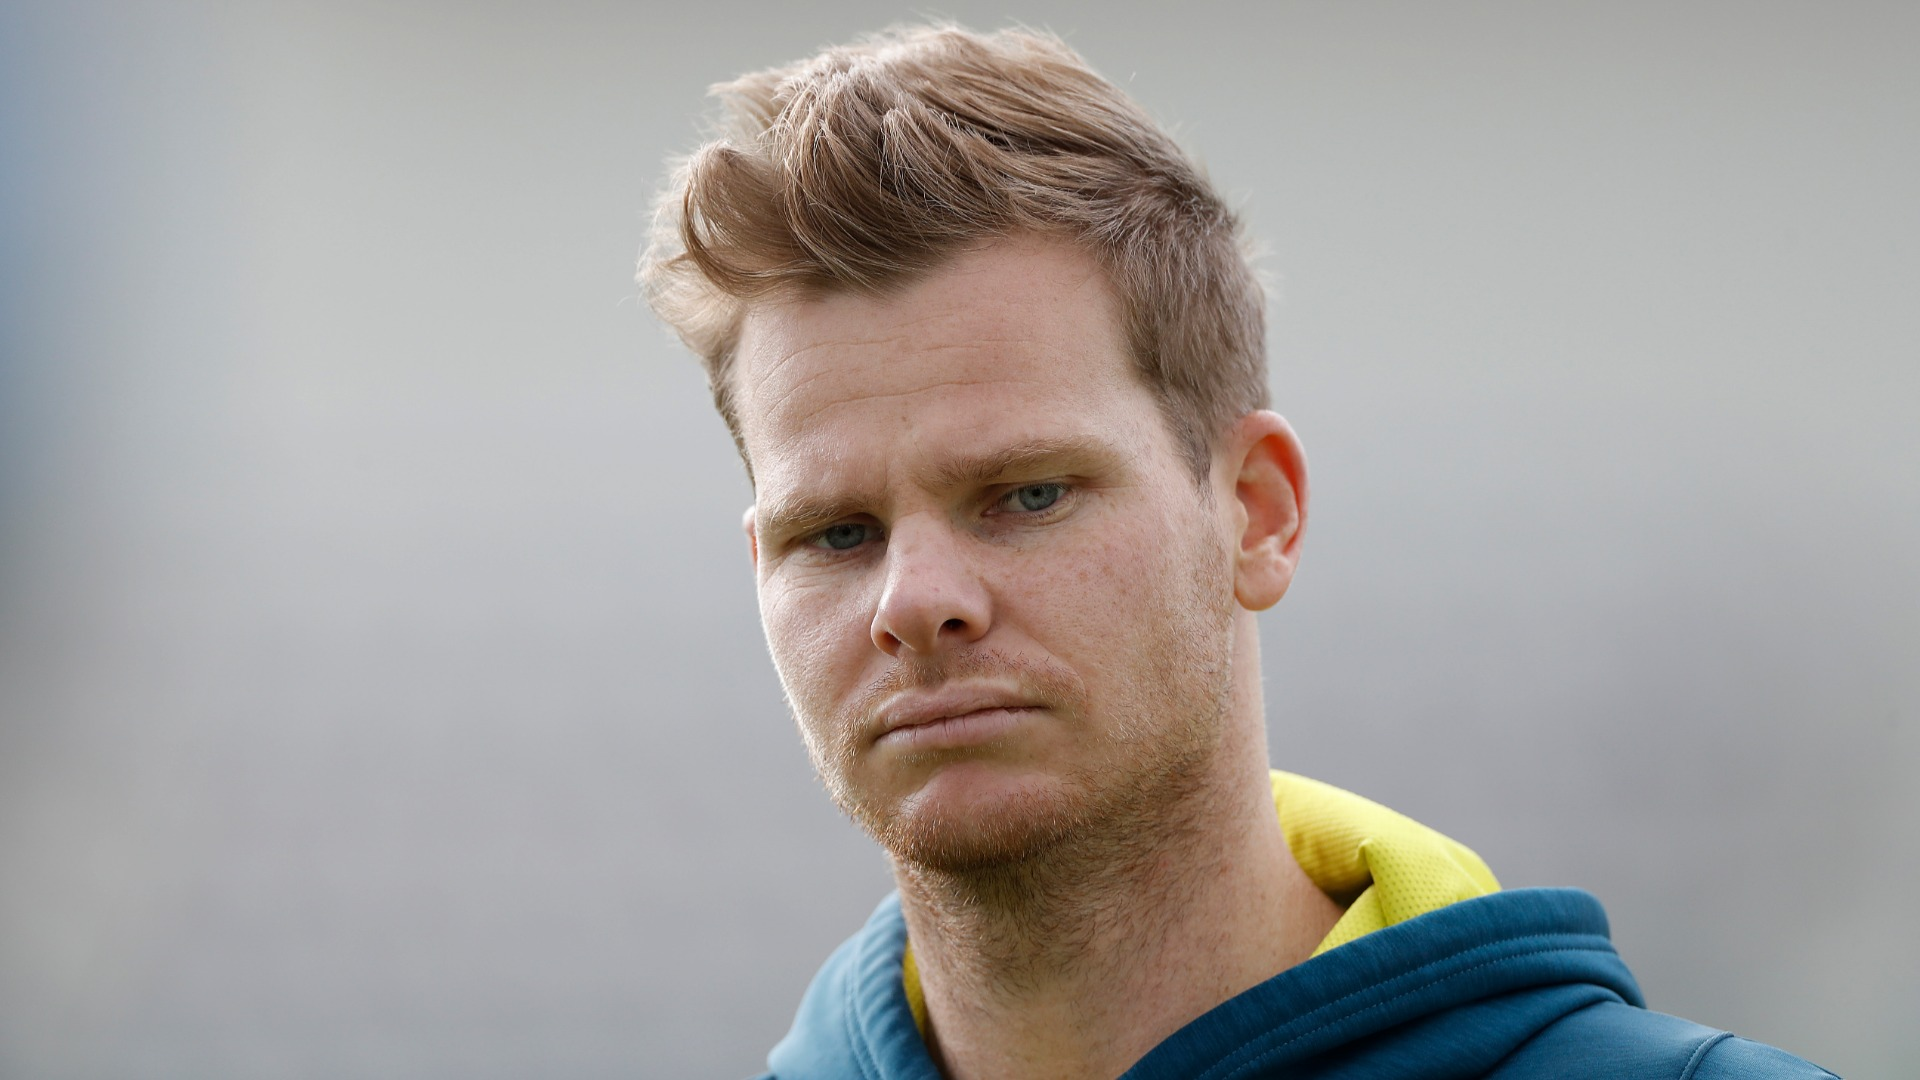 Steve Smith will miss the third Ashes Test, but England coach Trevor Bayliss is not getting carried away.